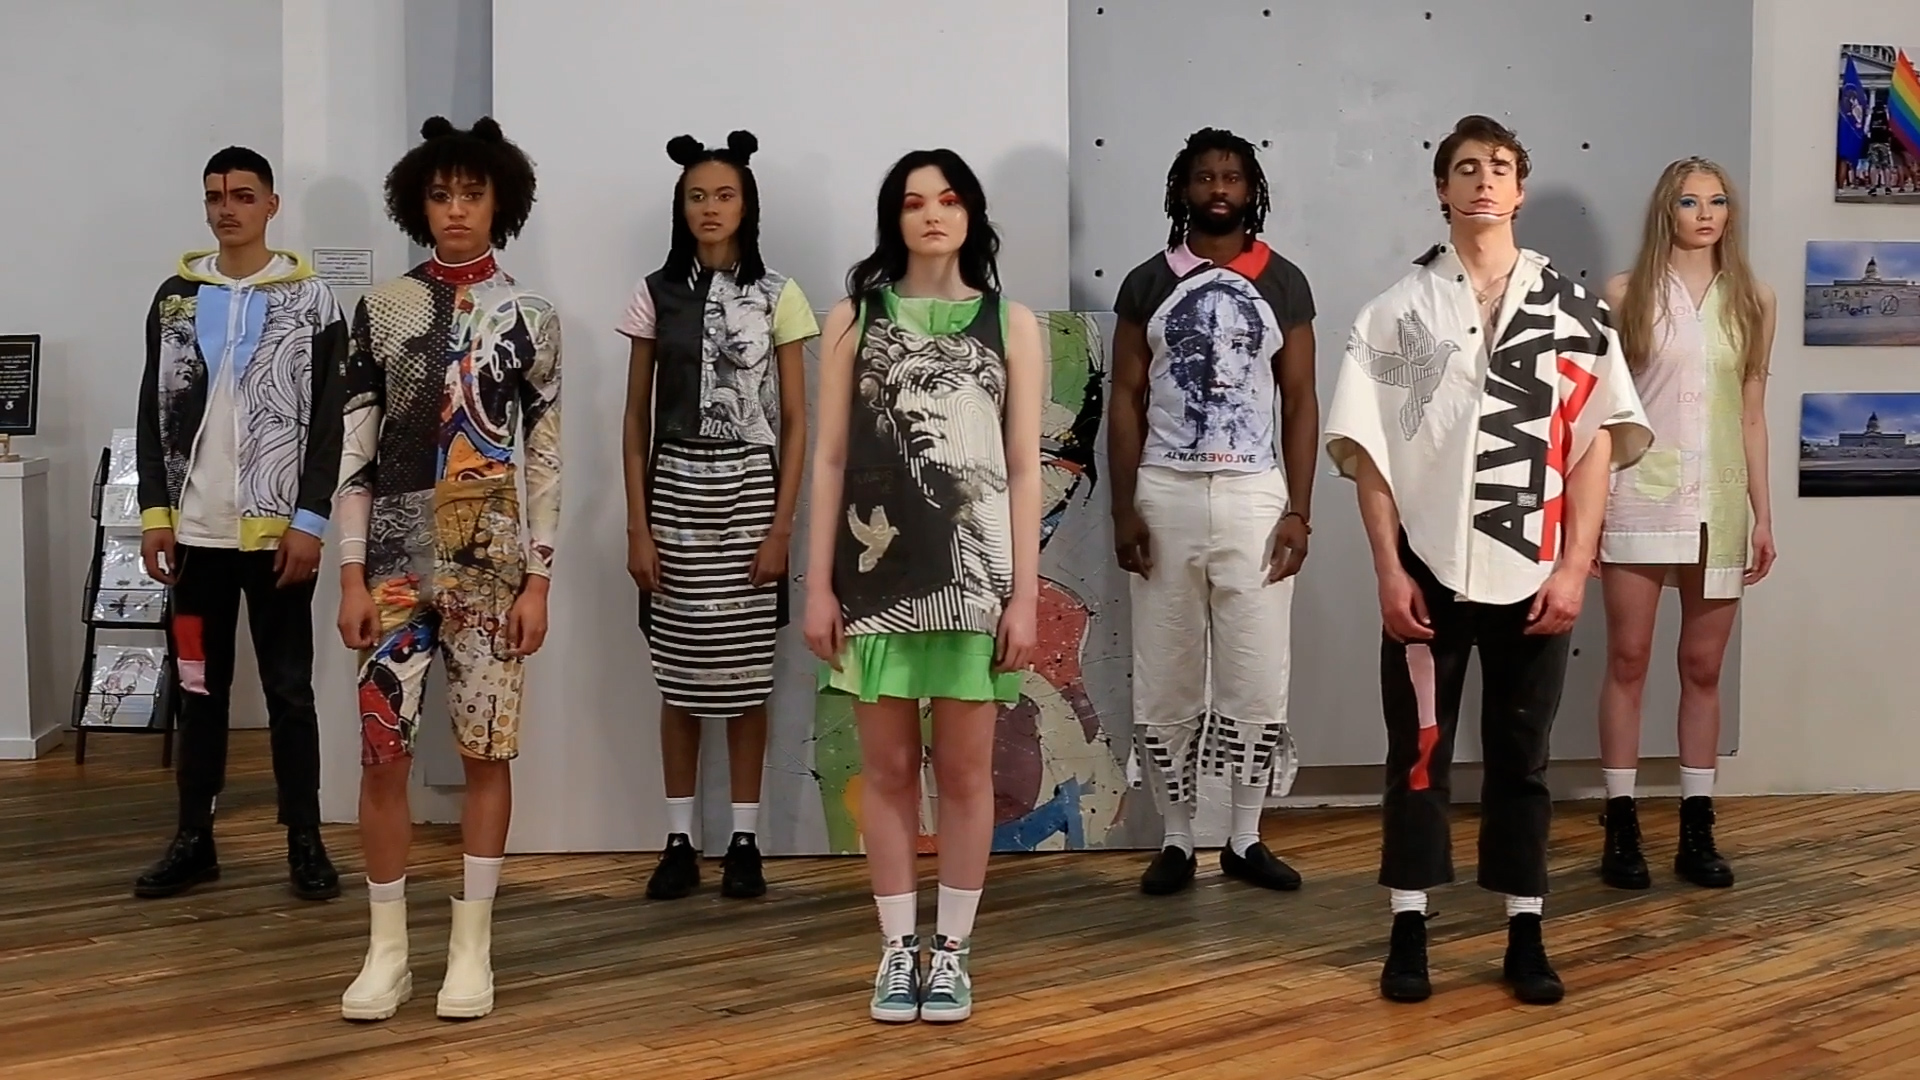 Several models wearing different clothing designs